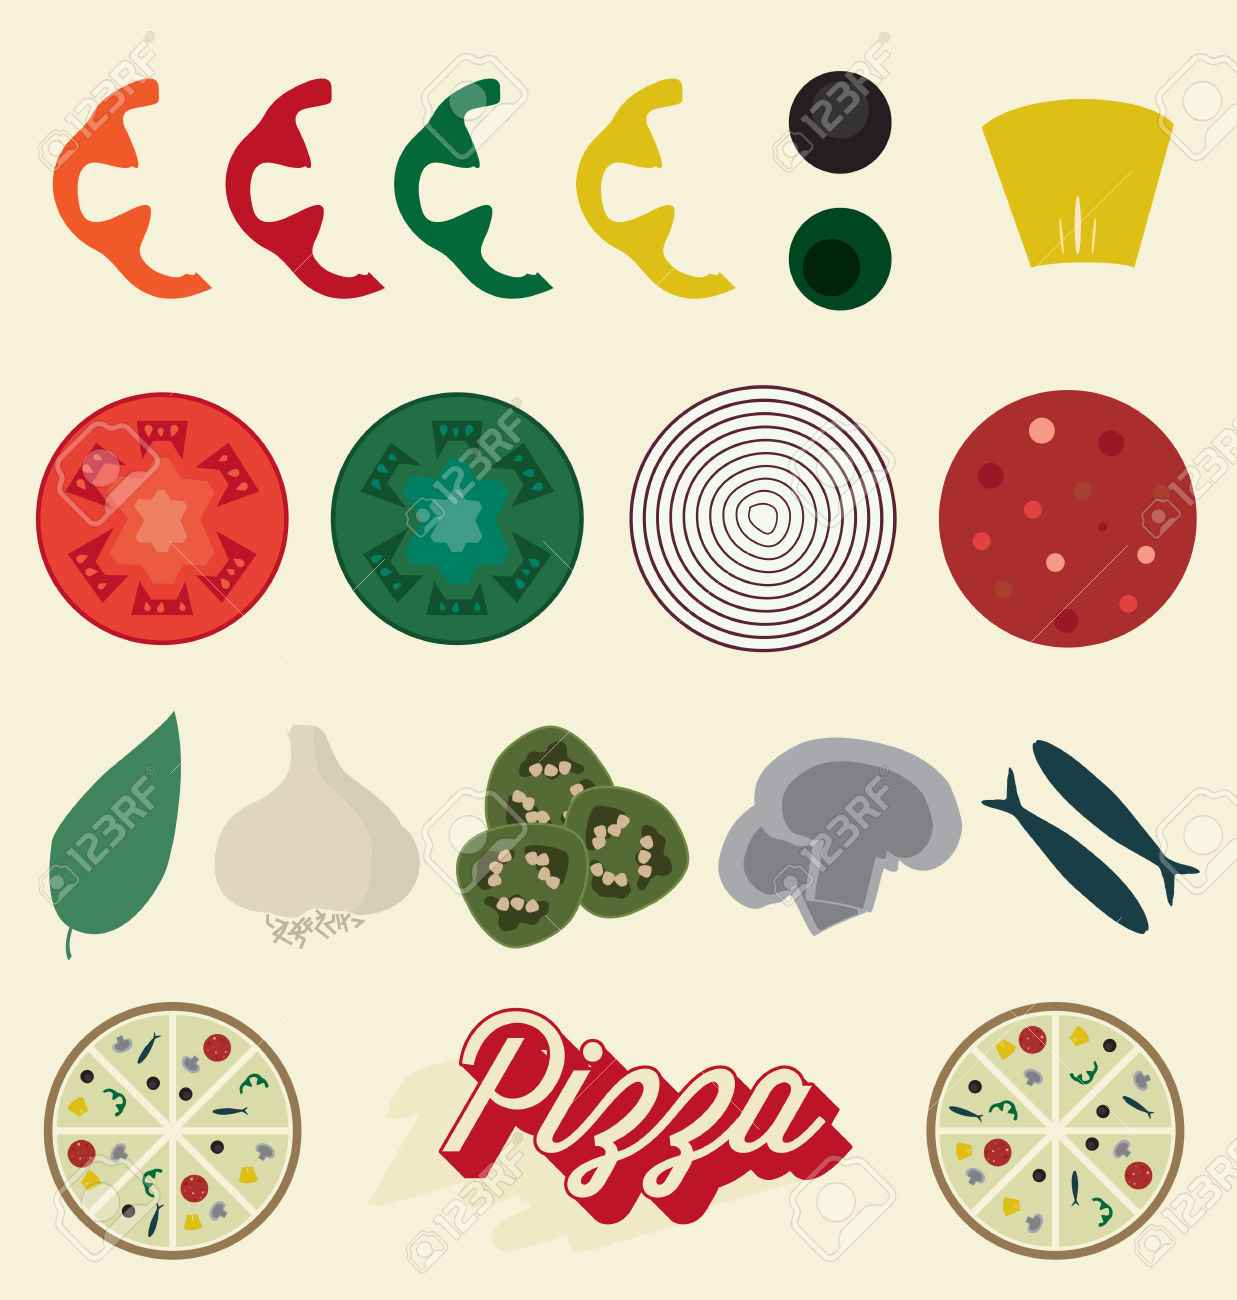 Pizza Topping: Pizza Toppings Collection-pizza topping: Pizza Toppings Collection Illustration-7